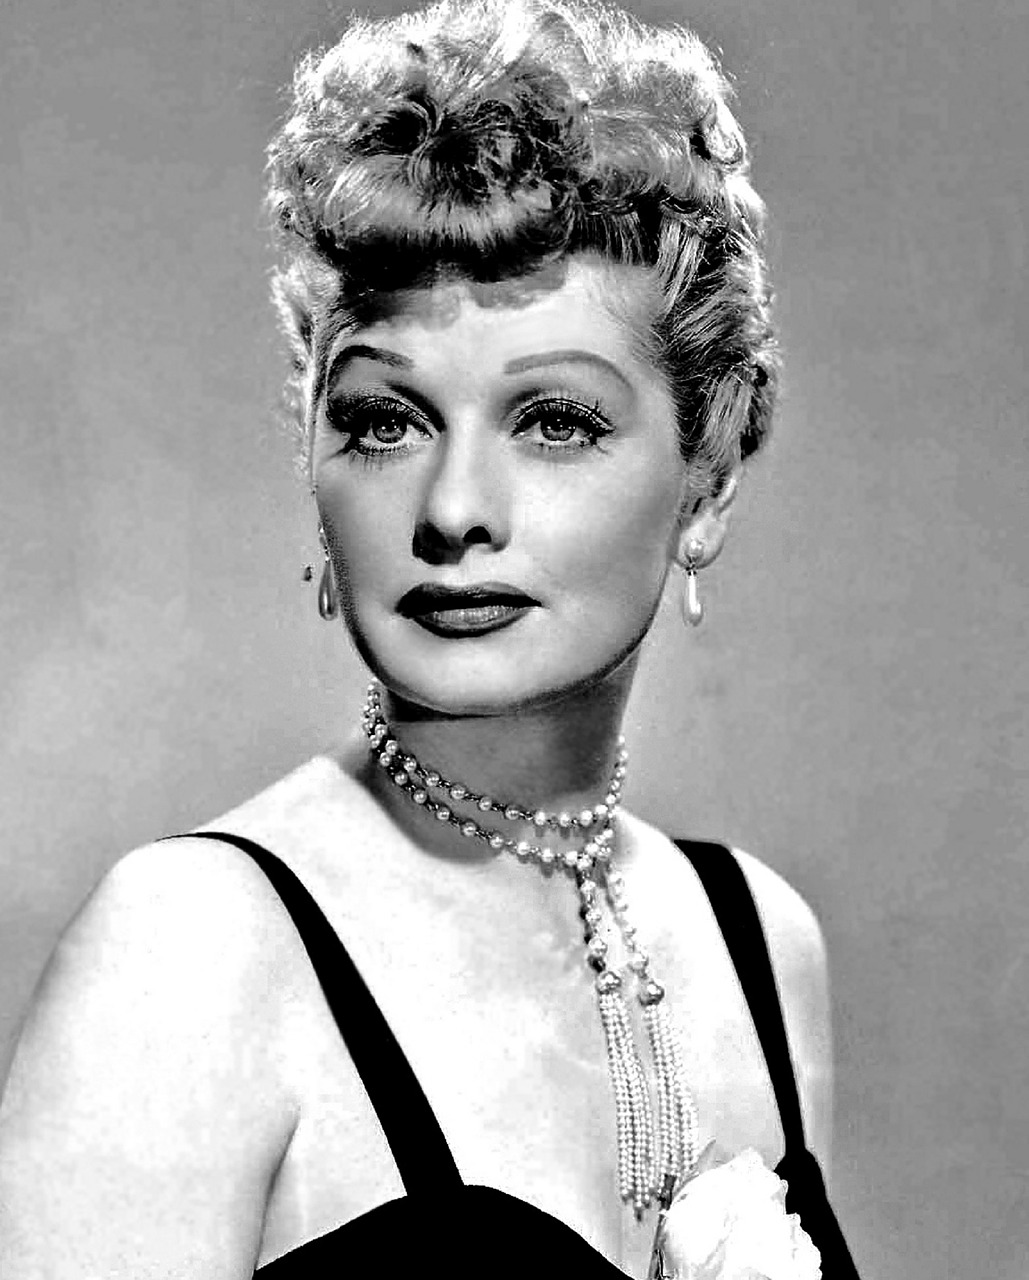 Lucille Ball in the 1950s.